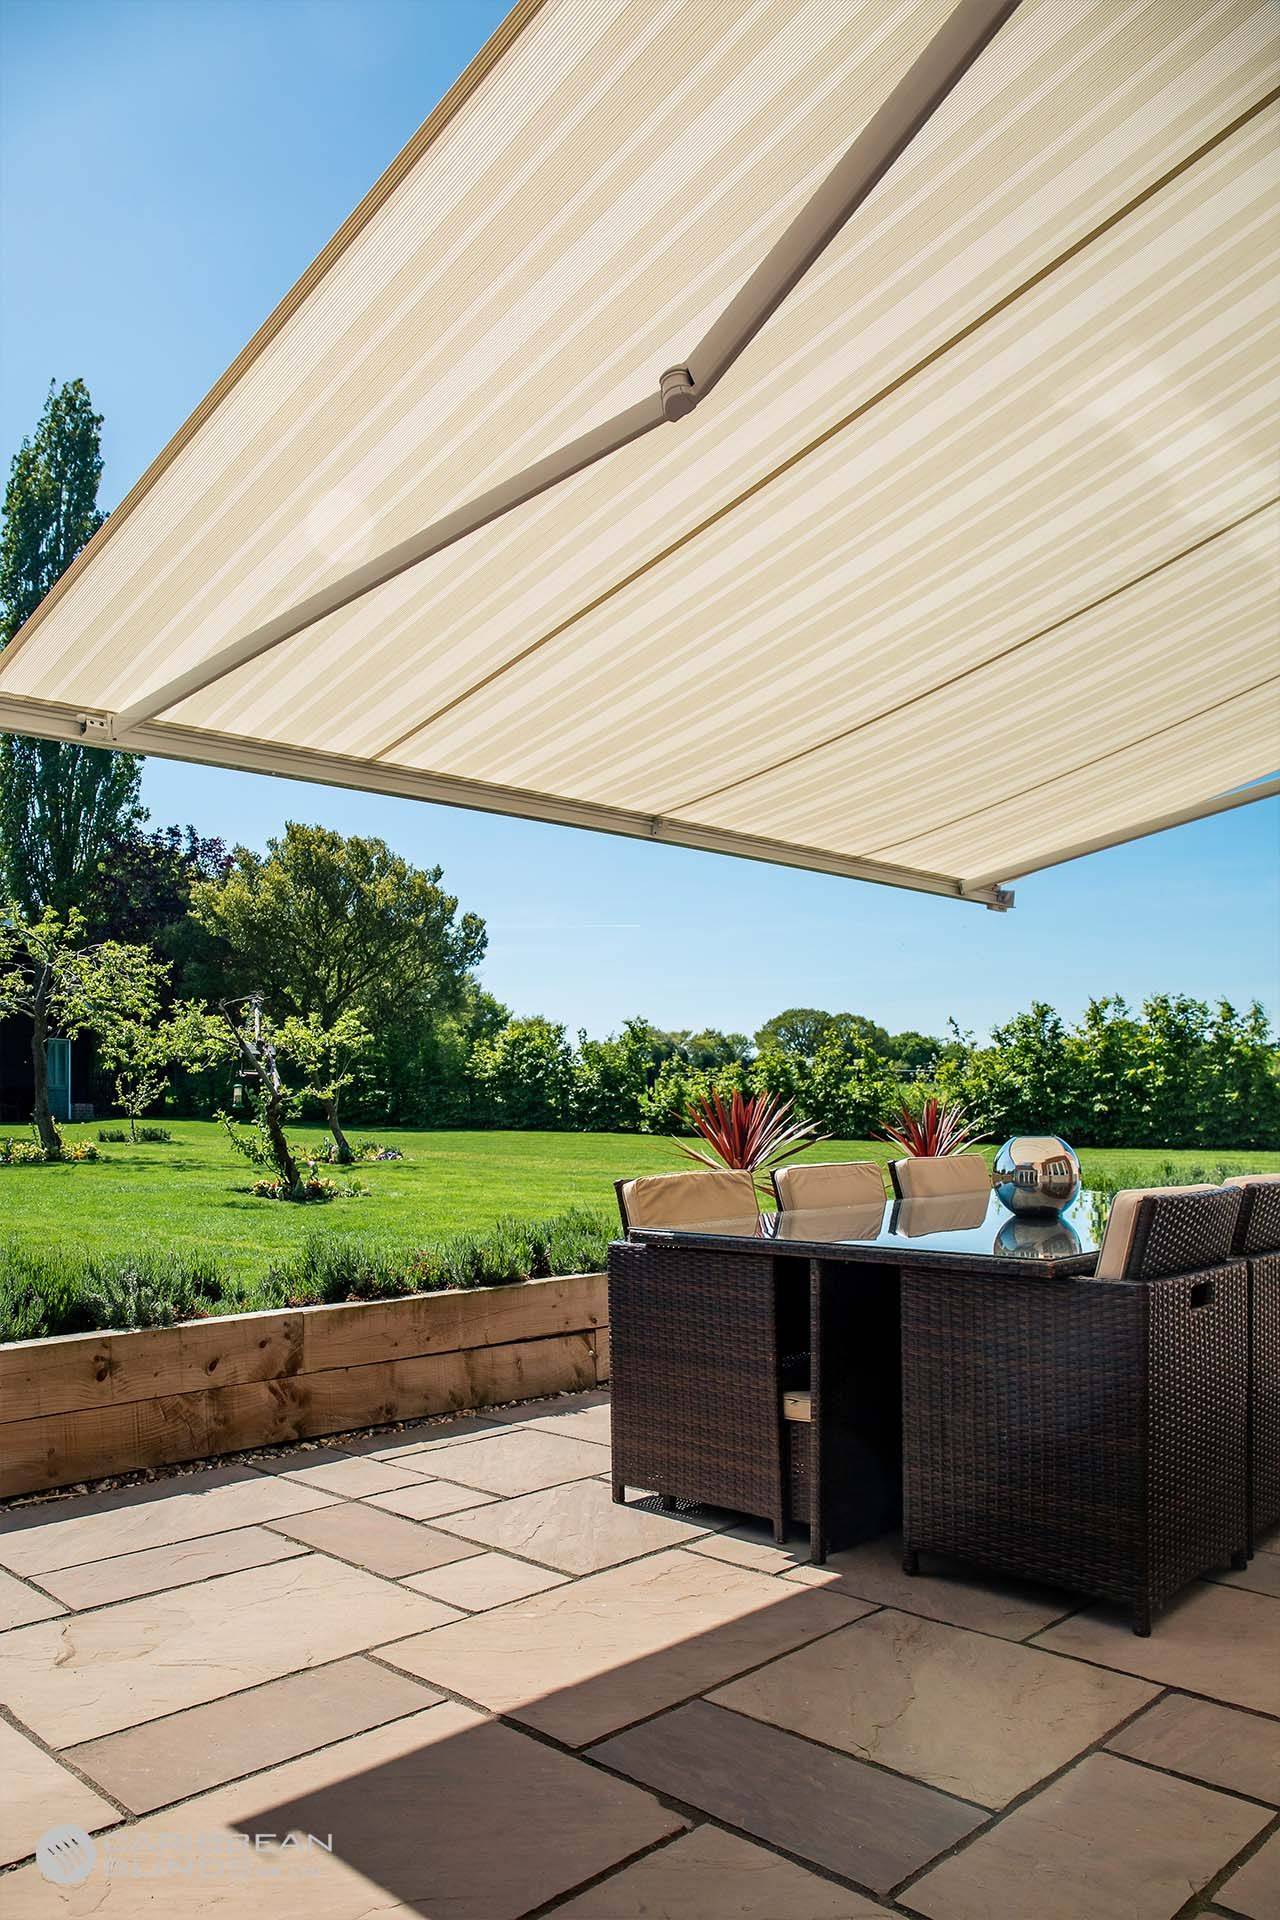 Cuba Heavy Duty Folding Arm Awning Caribbean Blinds In 2020 Patio Awning Patio Outdoor Living Areas